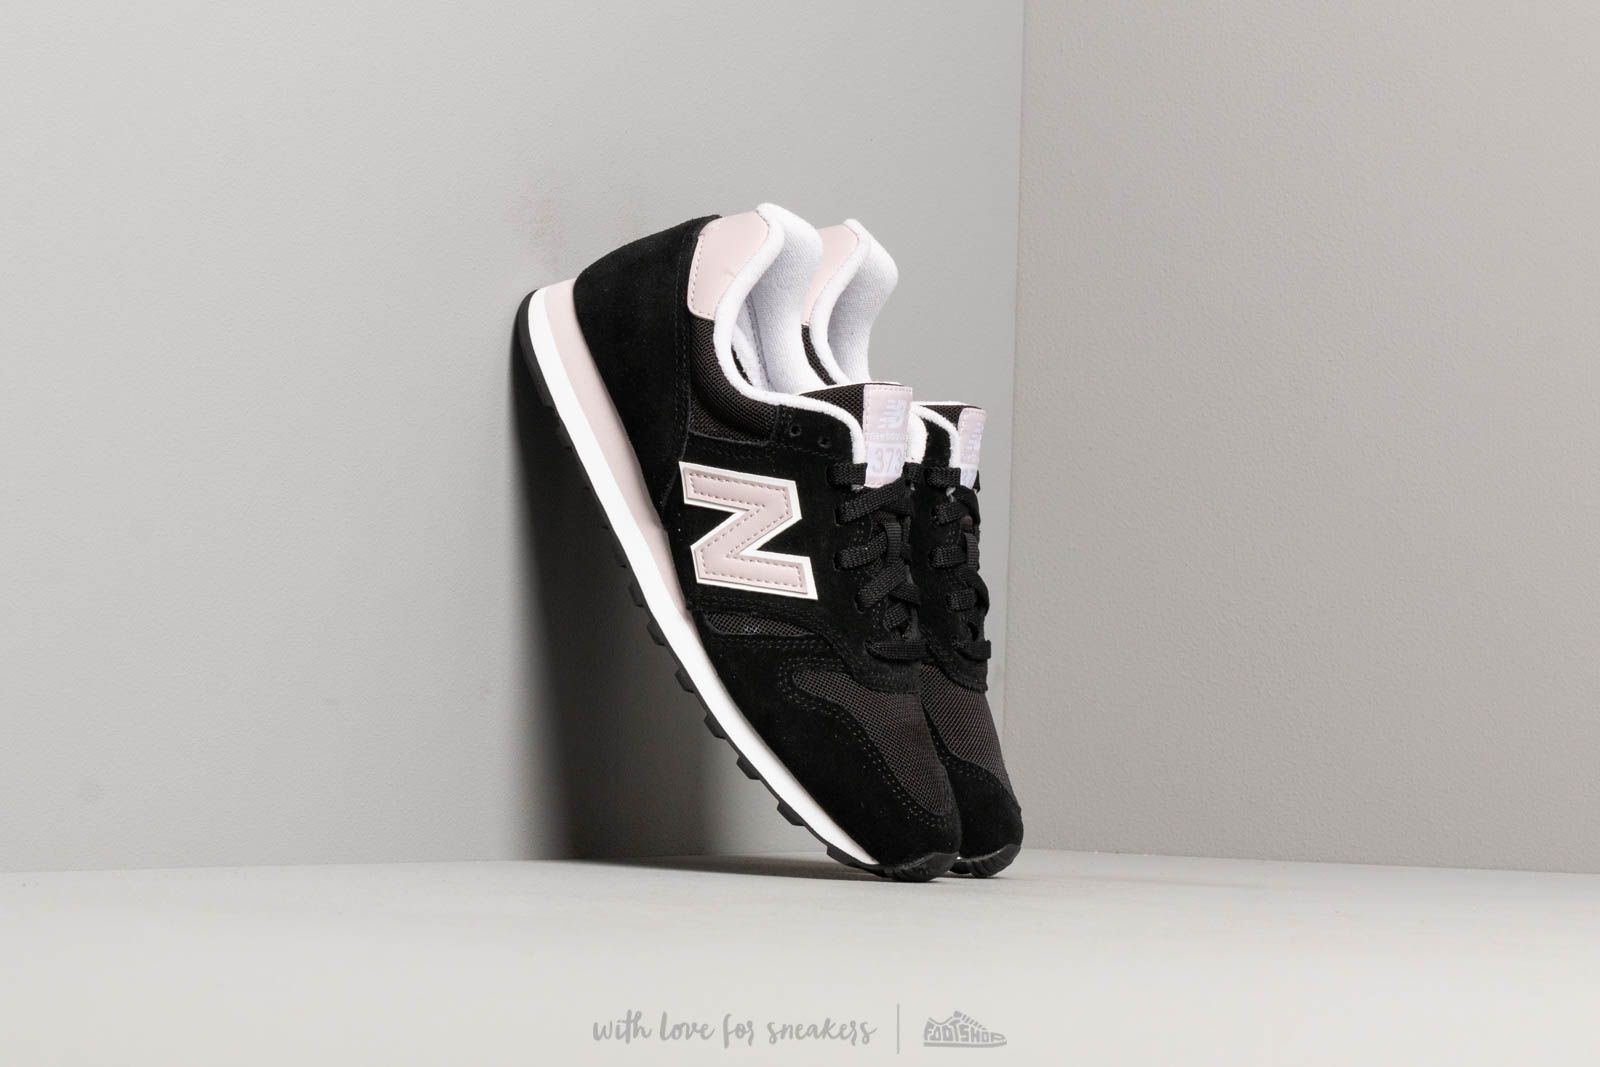 deslealtad Sótano rival  Women's shoes New Balance 373 Black/ Pink | Footshop